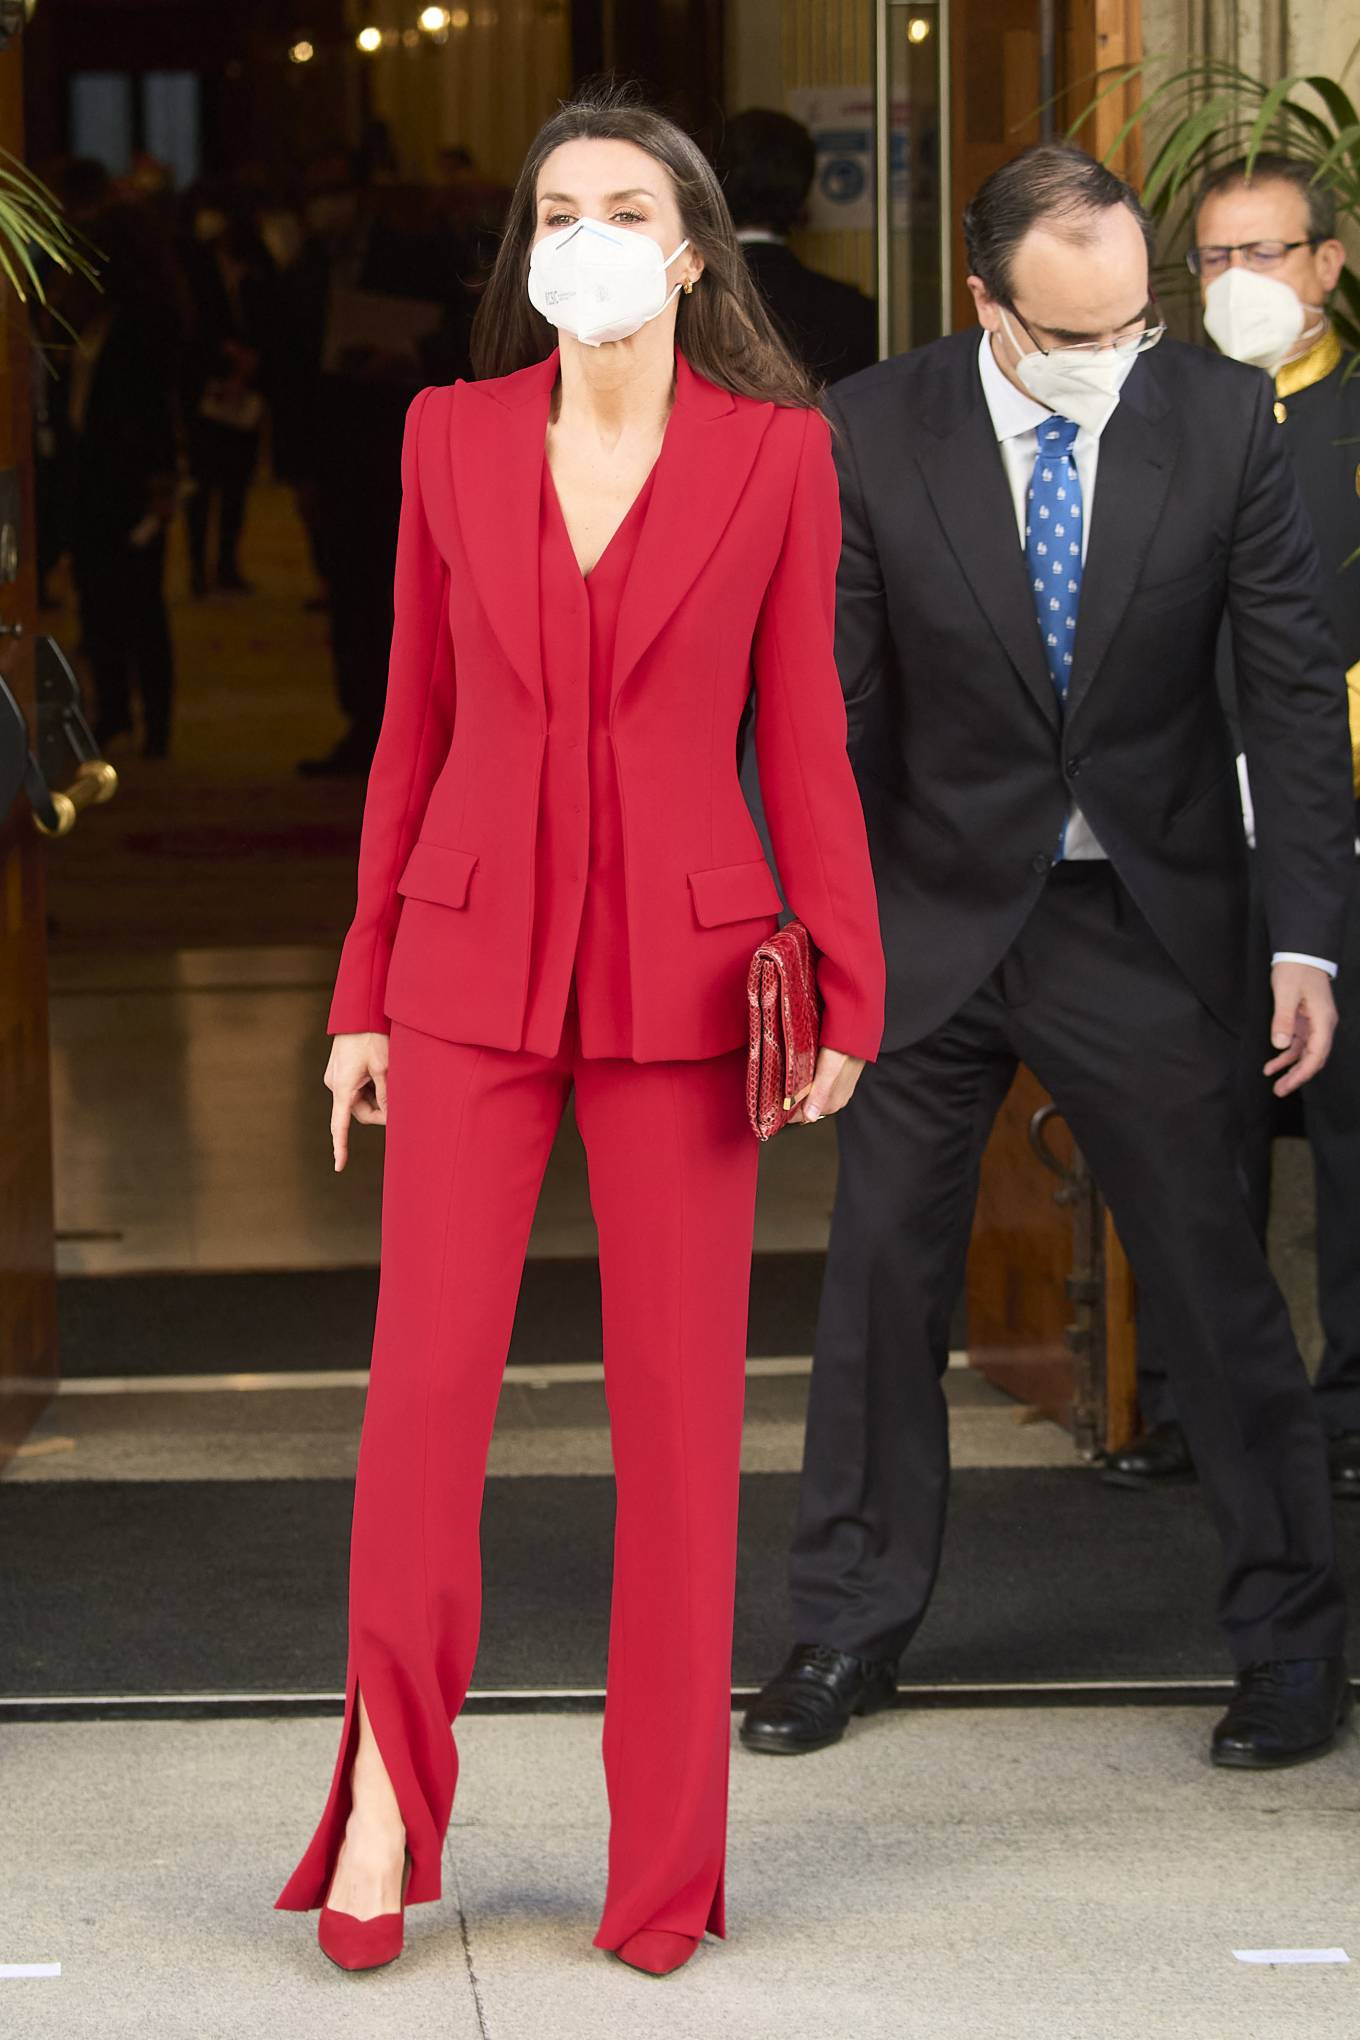 Queen Letizia Of Spain 2021 : Queen Letizia of Spain – In all red attends the tribute to the figure of Clara Campoamor in Madrid-04